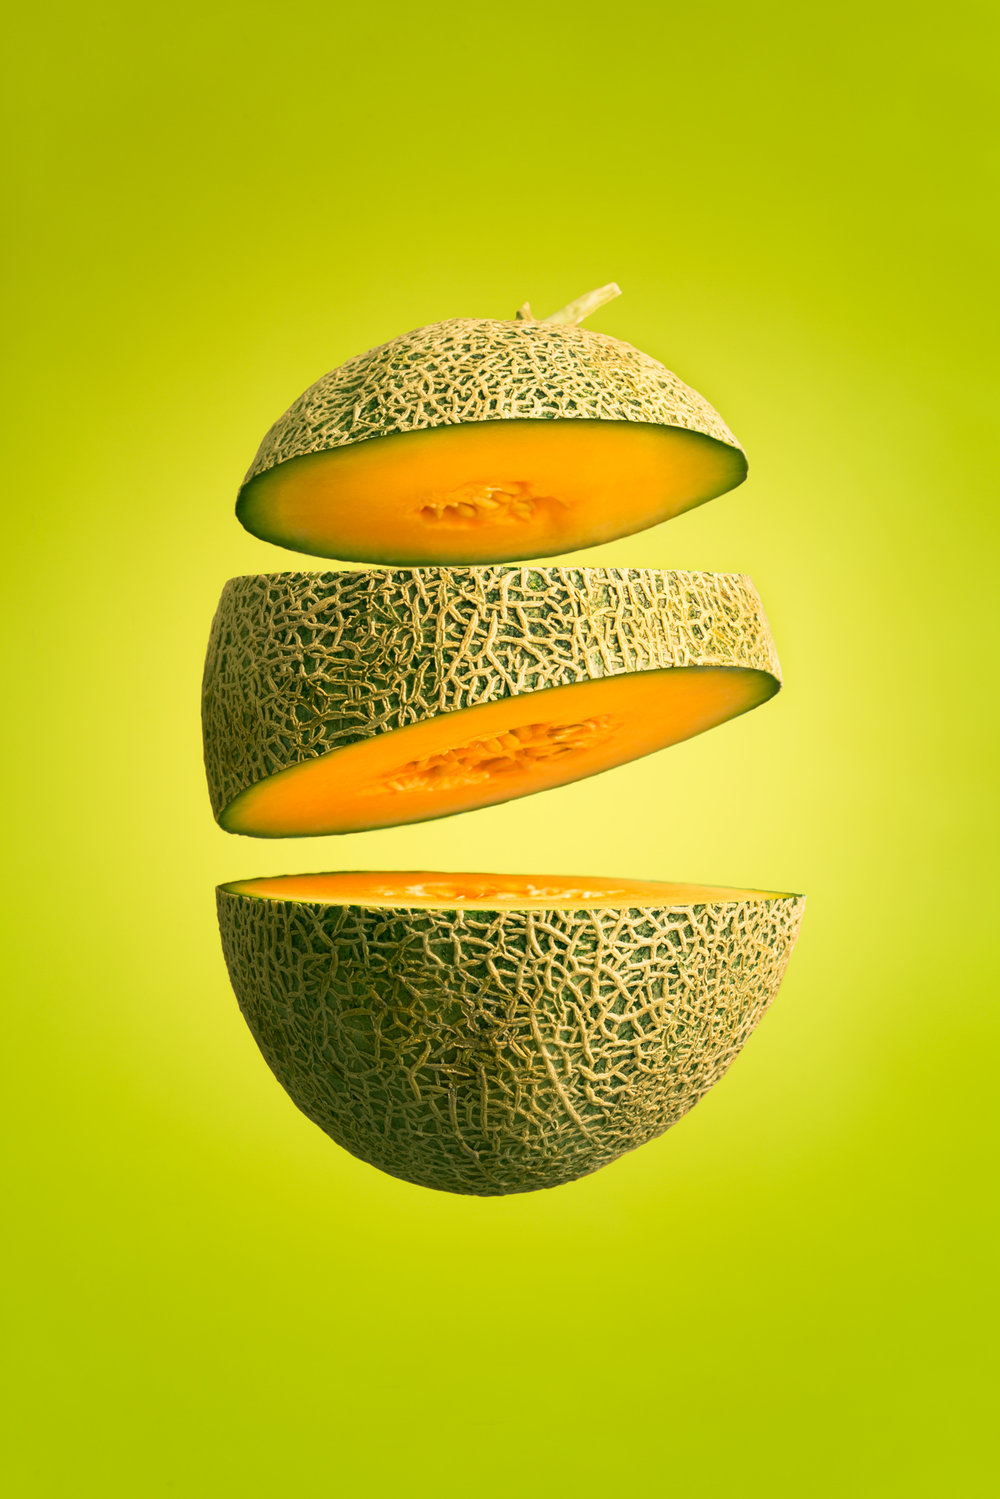 Ninja-Fruits-Melon.jpg